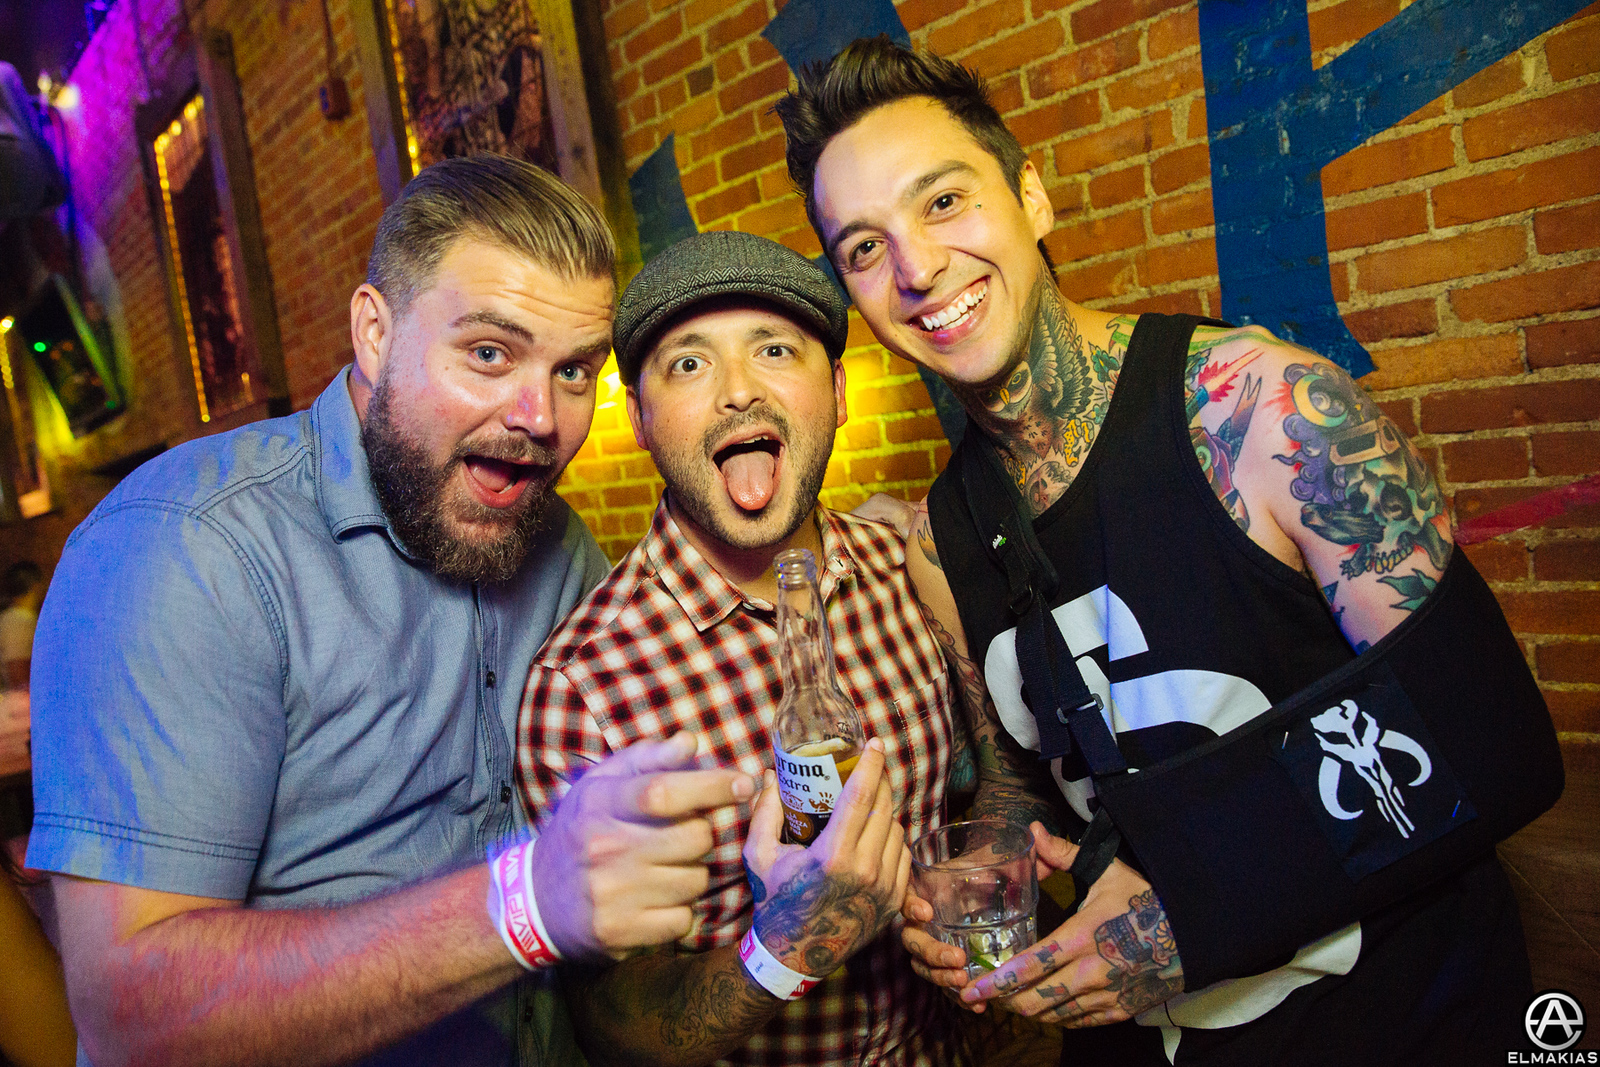 Brian Southall, Nick Martin of Sleeping With Sirens and Tony Perry of Pierce The Veil at the APMAs 2015 by Adam Elmakias